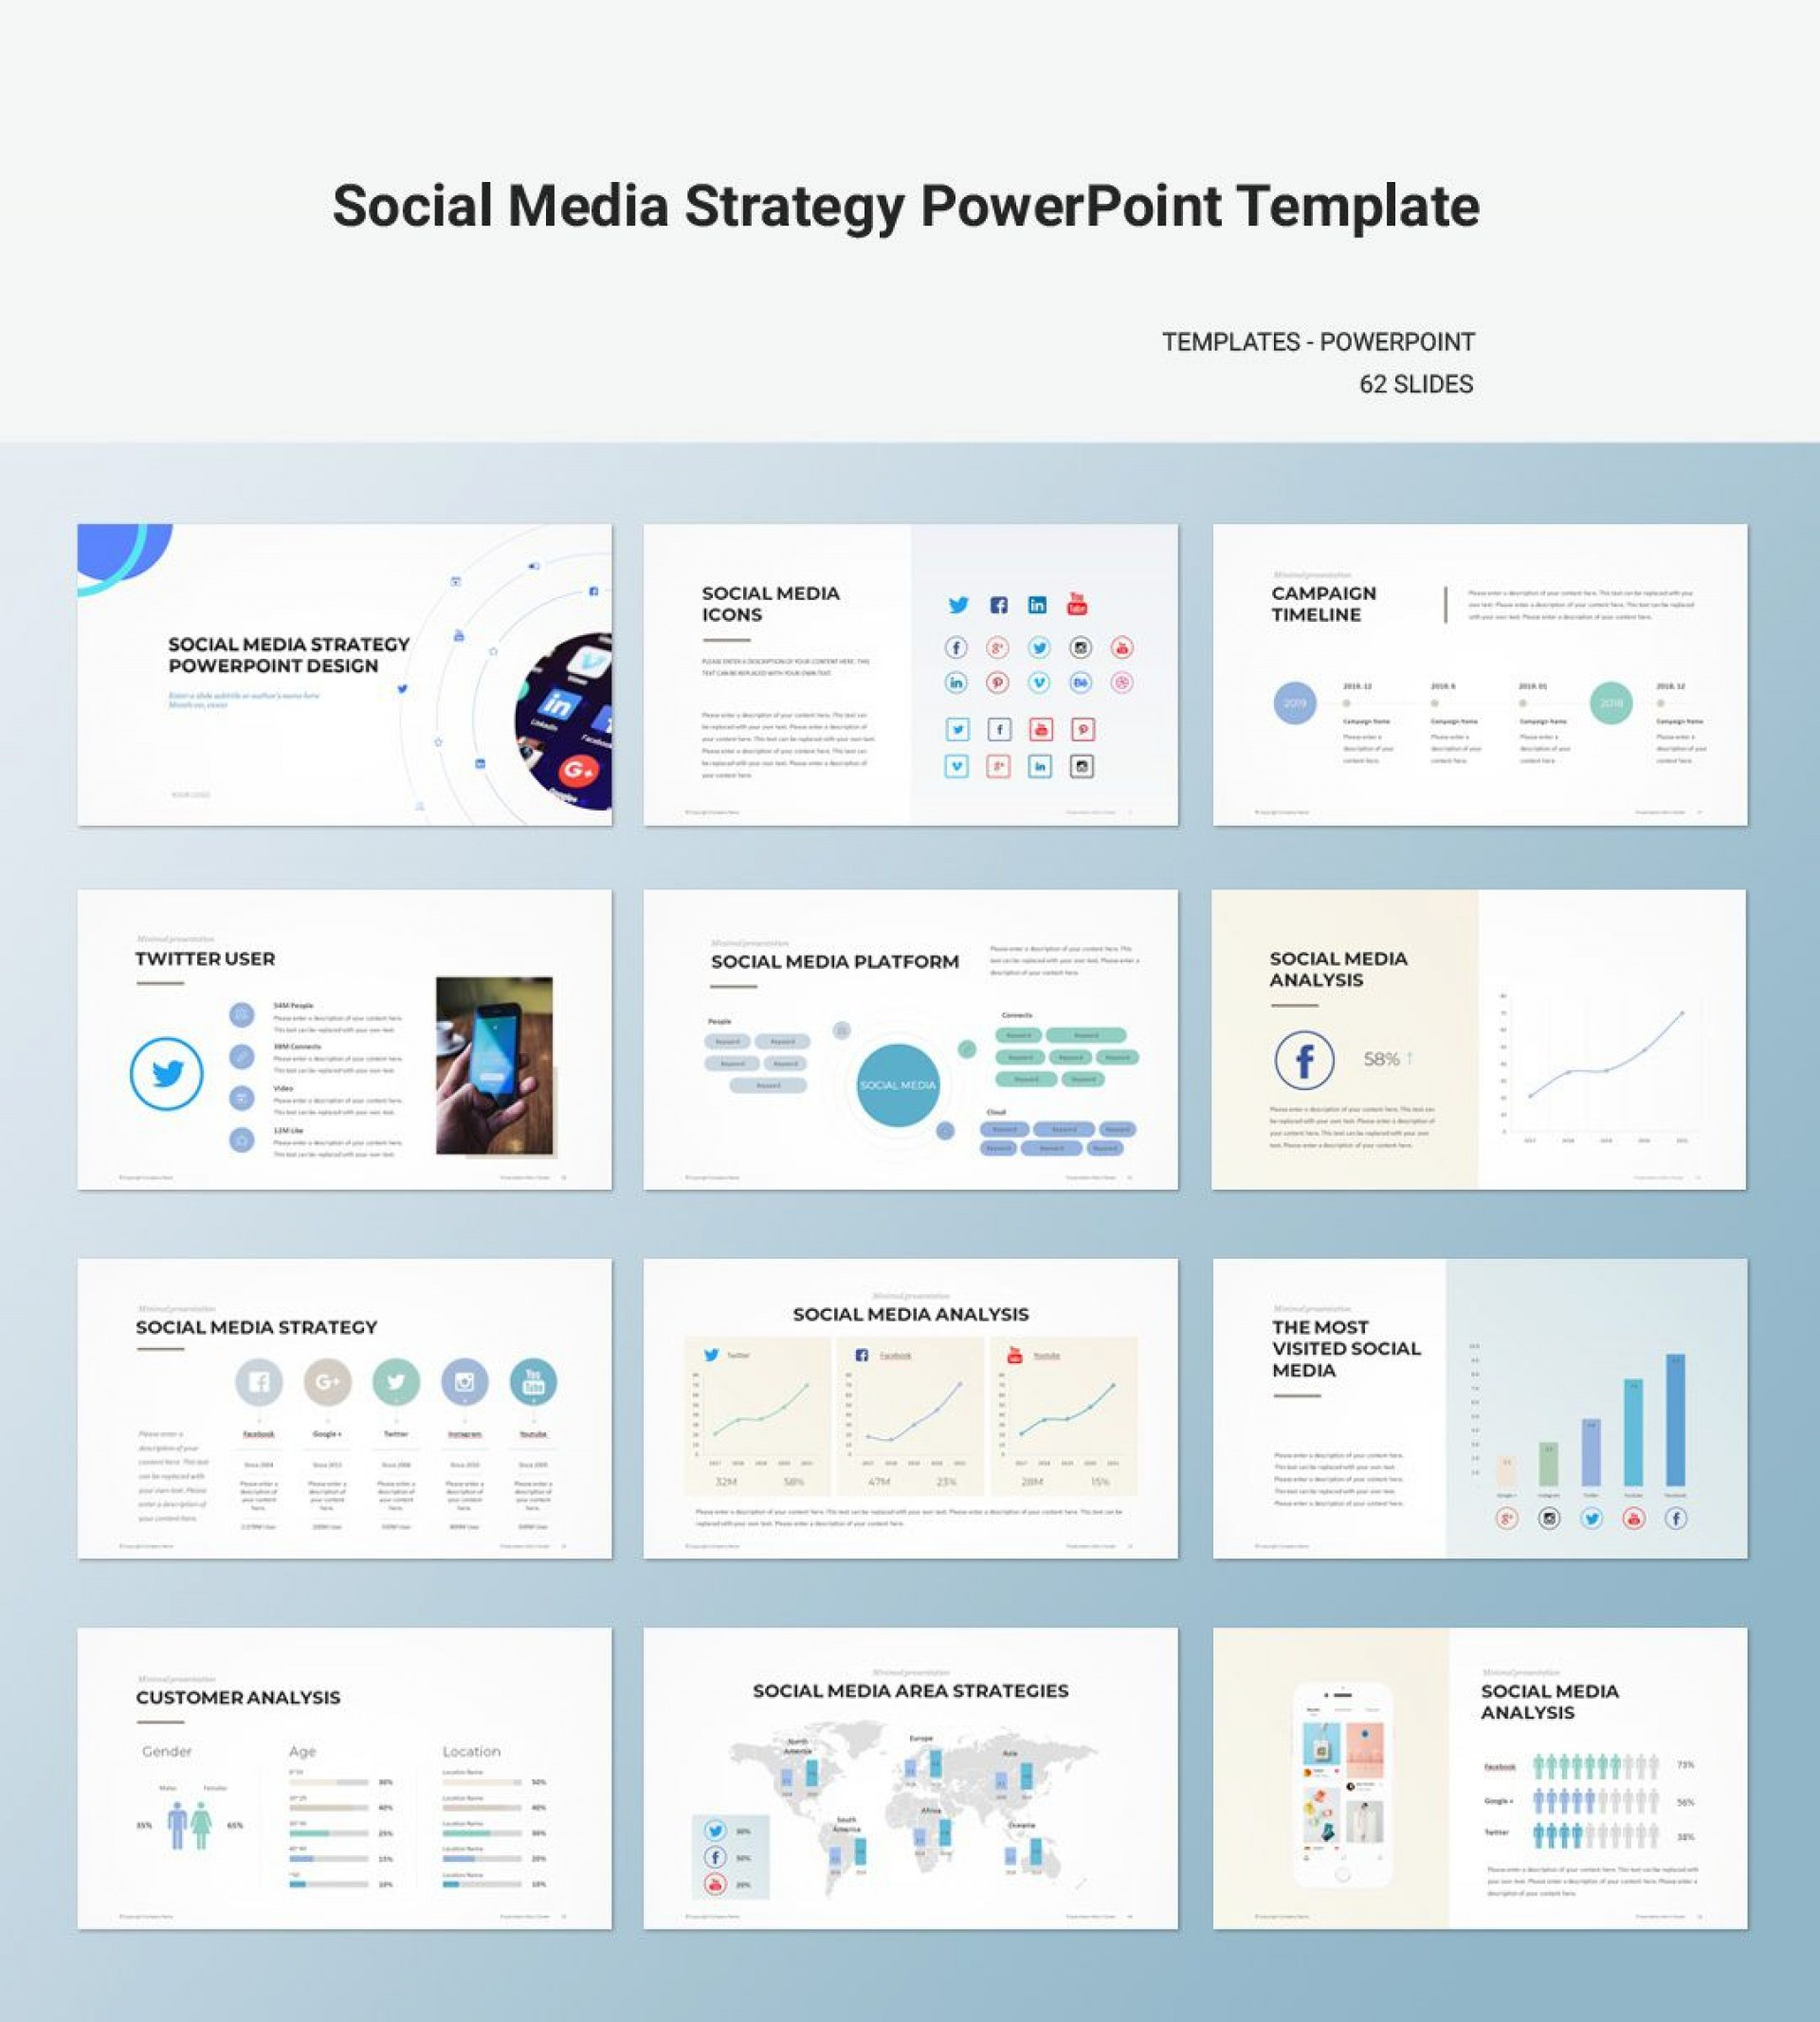 009 Formidable Social Media Proposal Template Ppt Concept 1920